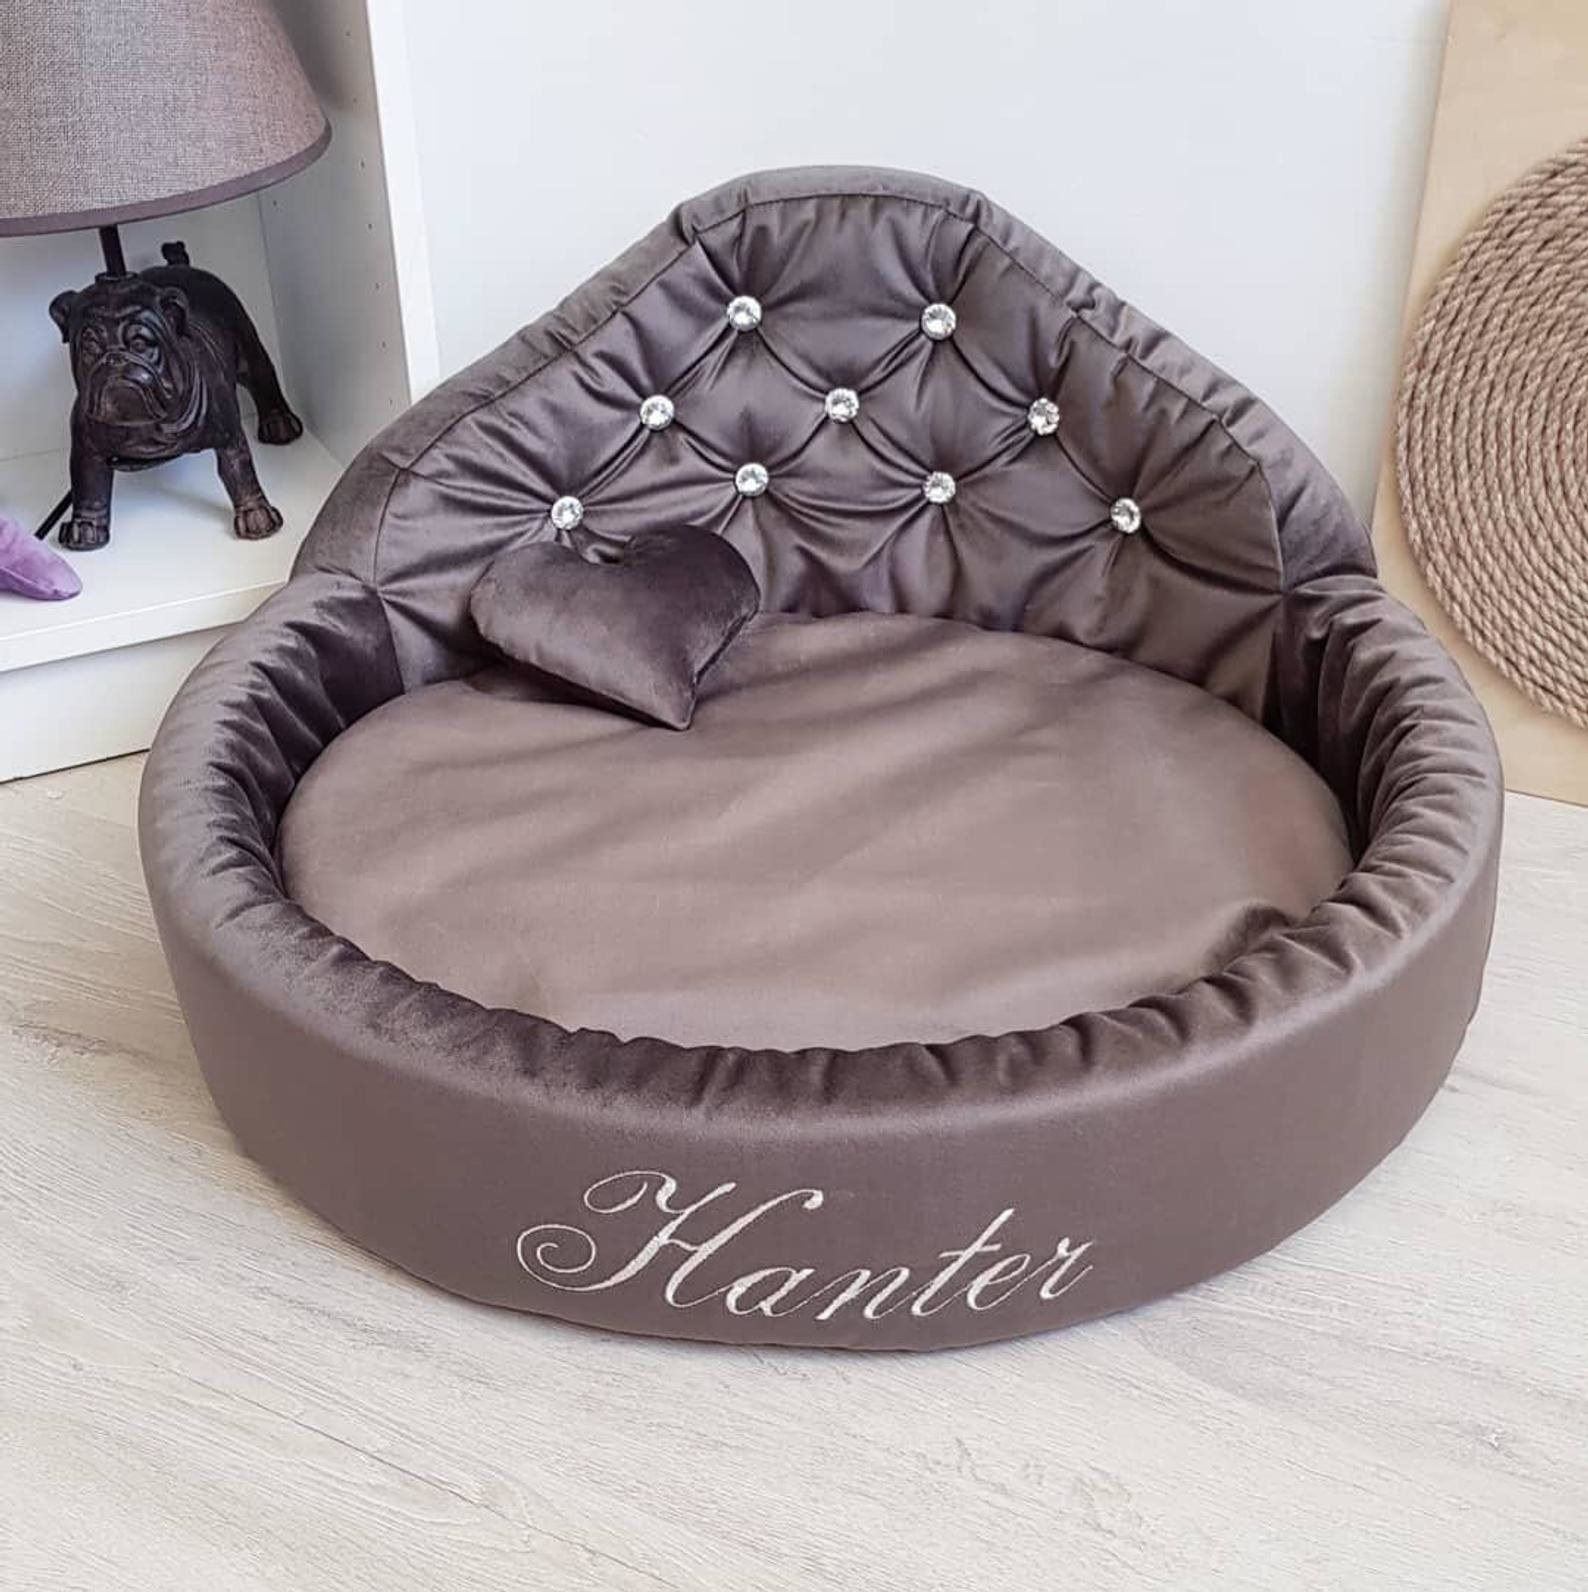 a brown personalized dog bed with rhinestones and embroidery